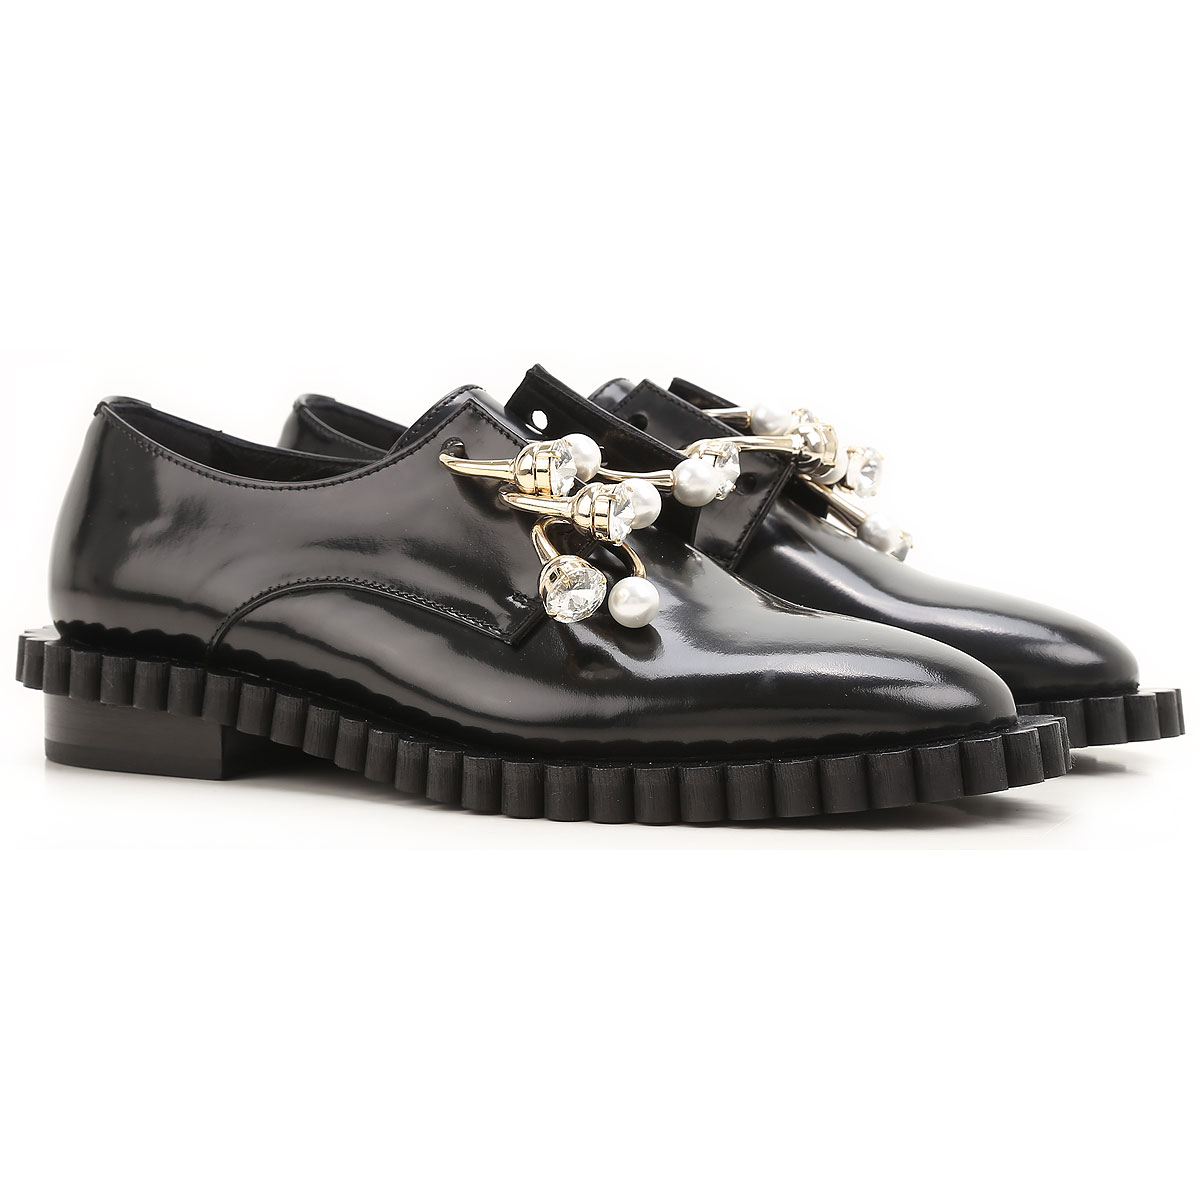 Image of Coliac Loafers for Women, Black, Leather, 2017, 5 6 6.5 7 8 8.5 9